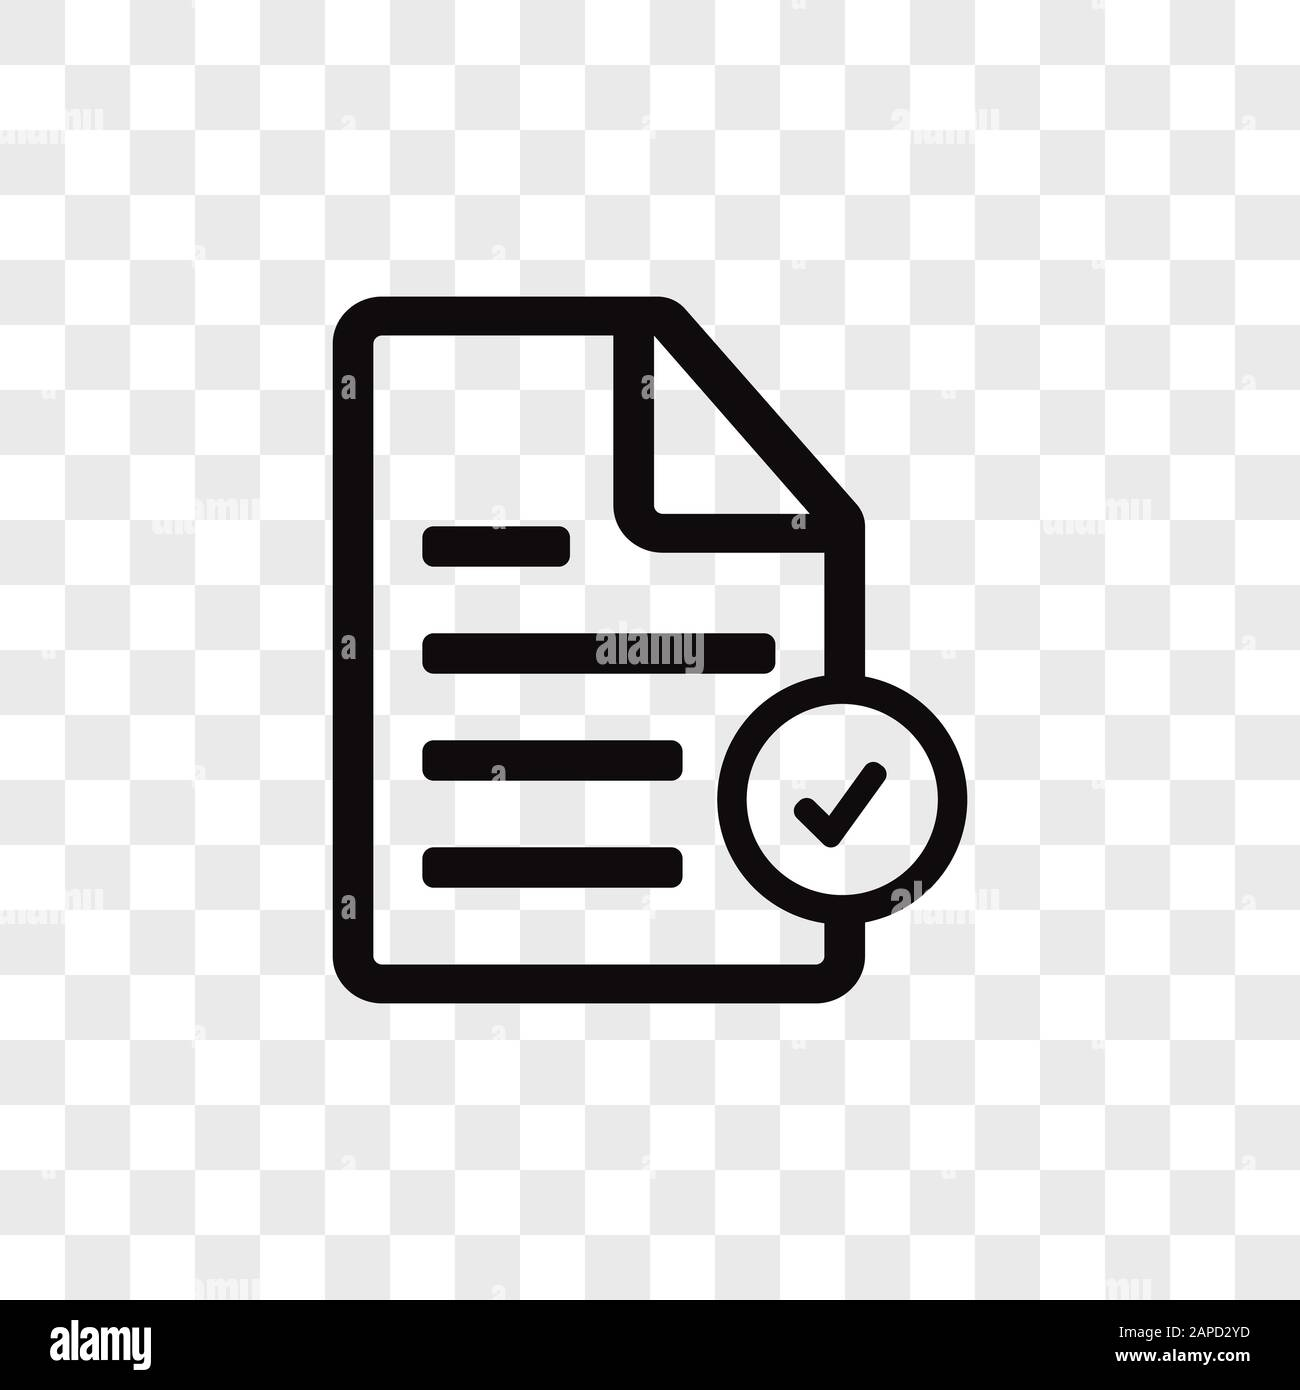 Check List Vector Icon Checked Symbol Approve Pictogram In